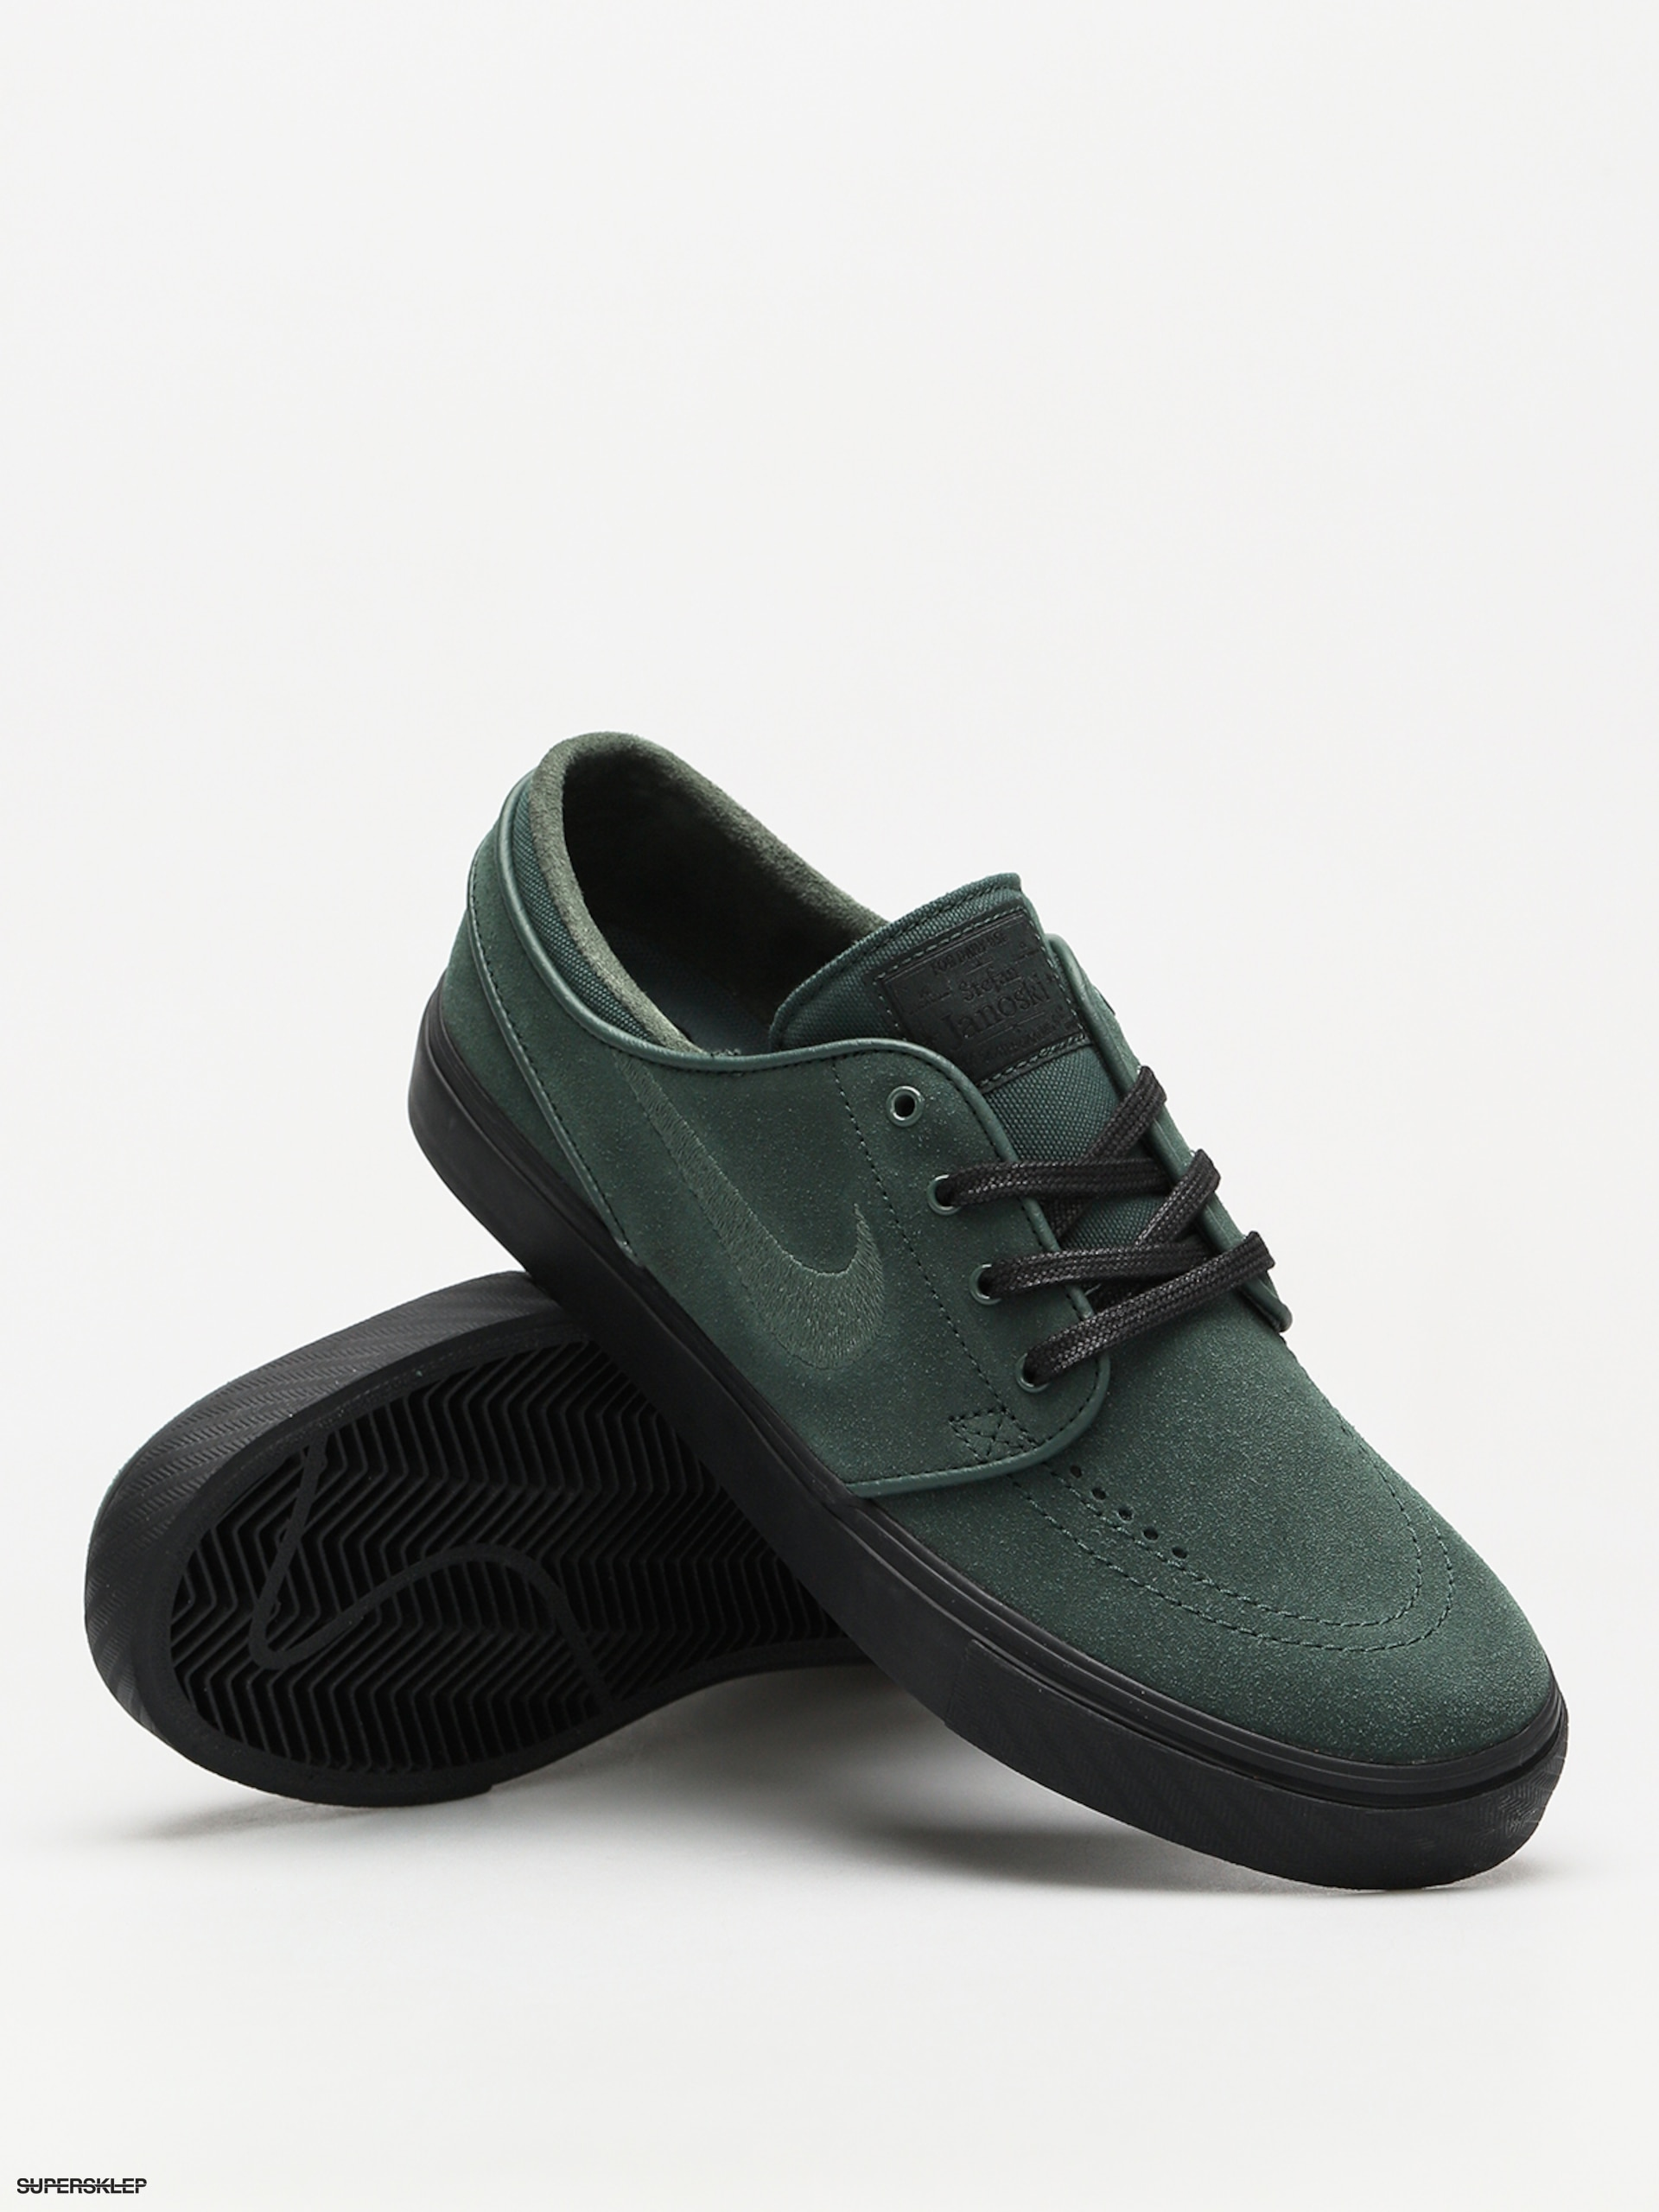 Abrazadera pared Subvención  Topánky Nike SB Zoom Stefan Janoski (midnight green/midnight green black)